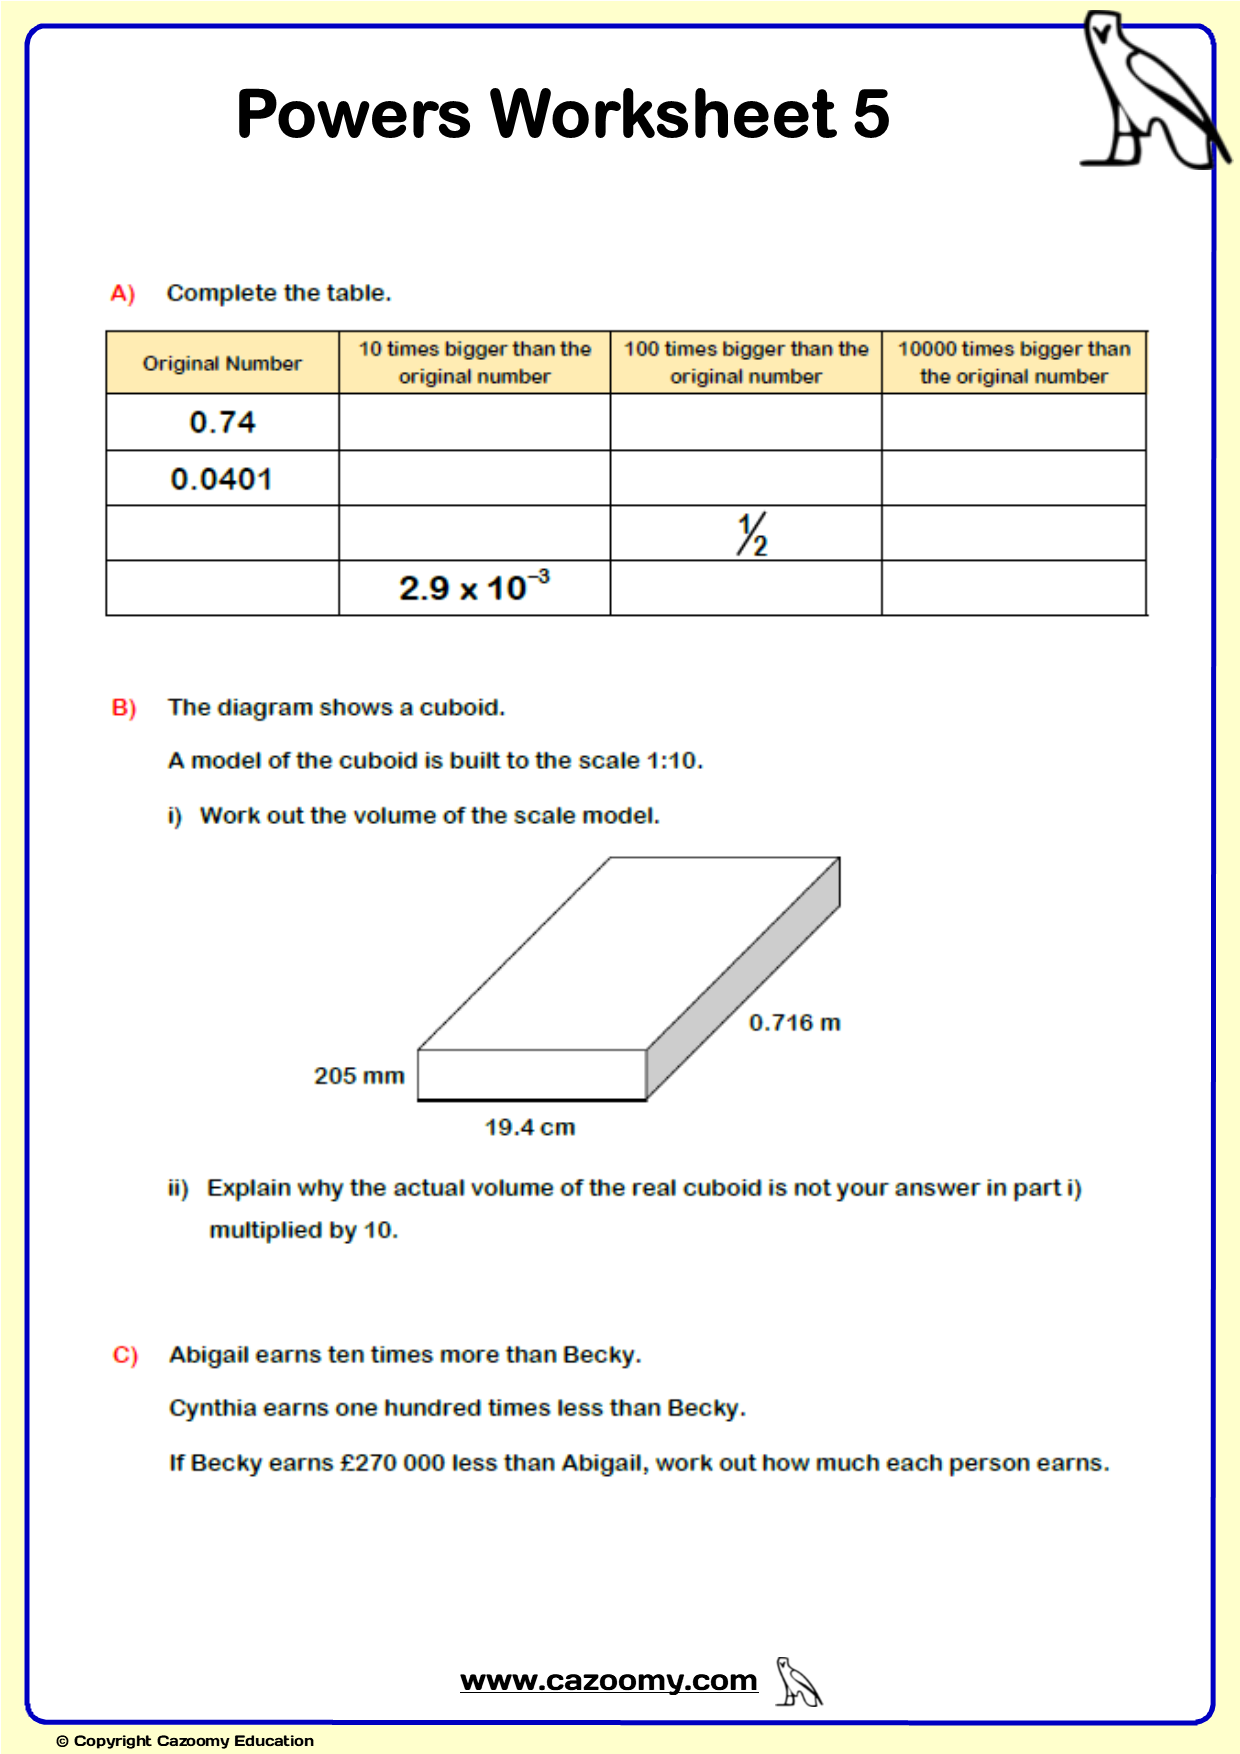 Powers Maths Worksheet 5